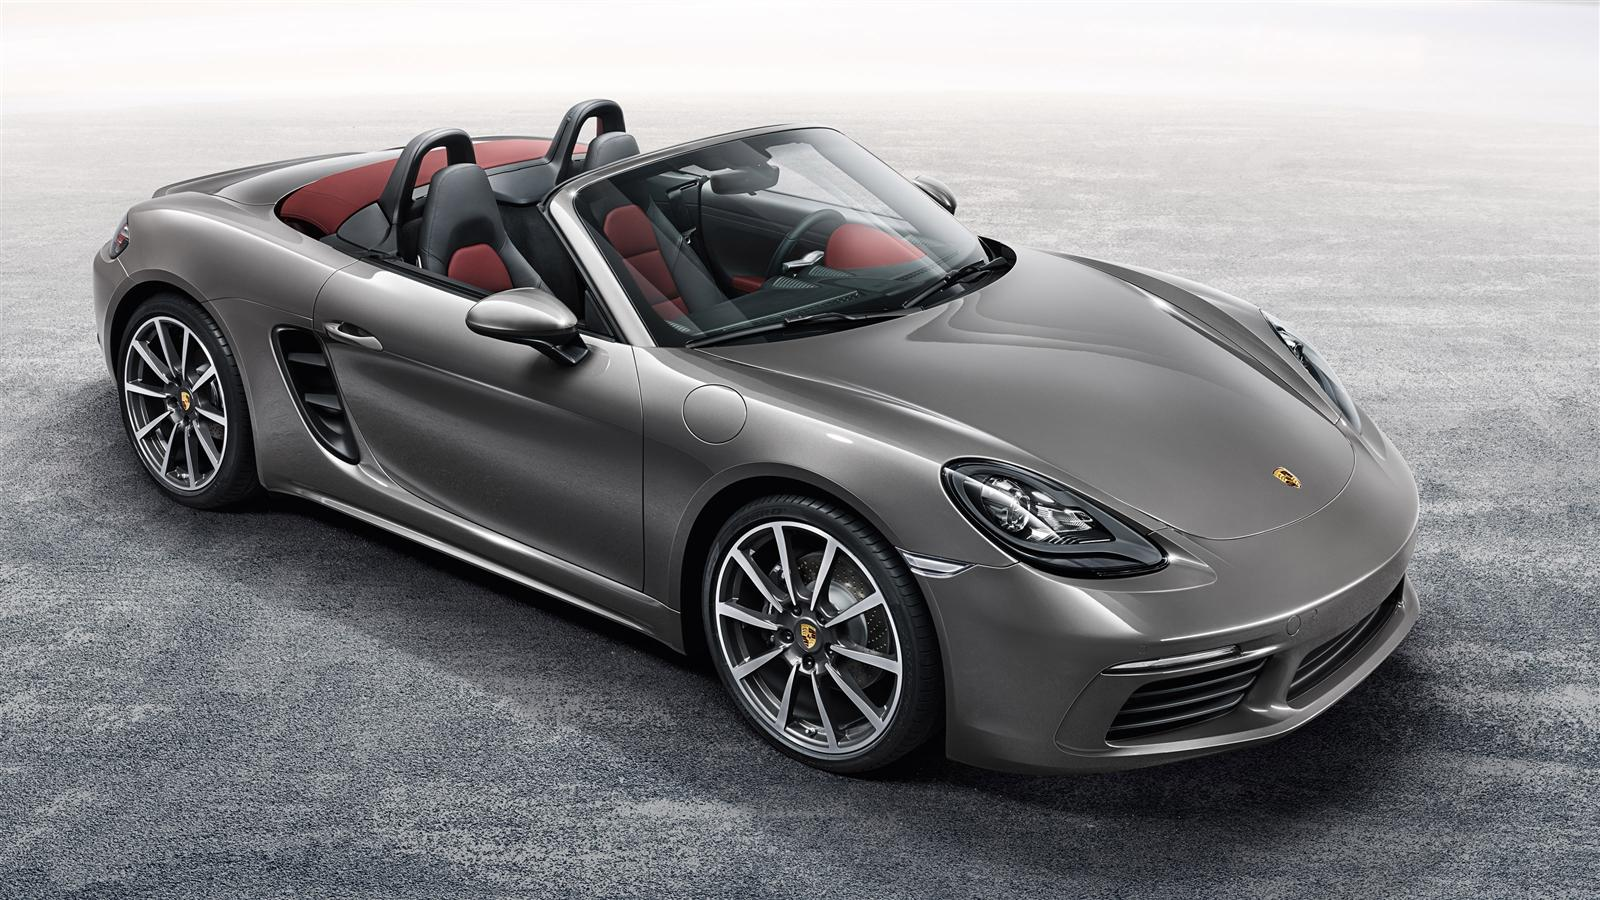 porsche s type 718 boxster cayman gets upgrades techgage. Black Bedroom Furniture Sets. Home Design Ideas